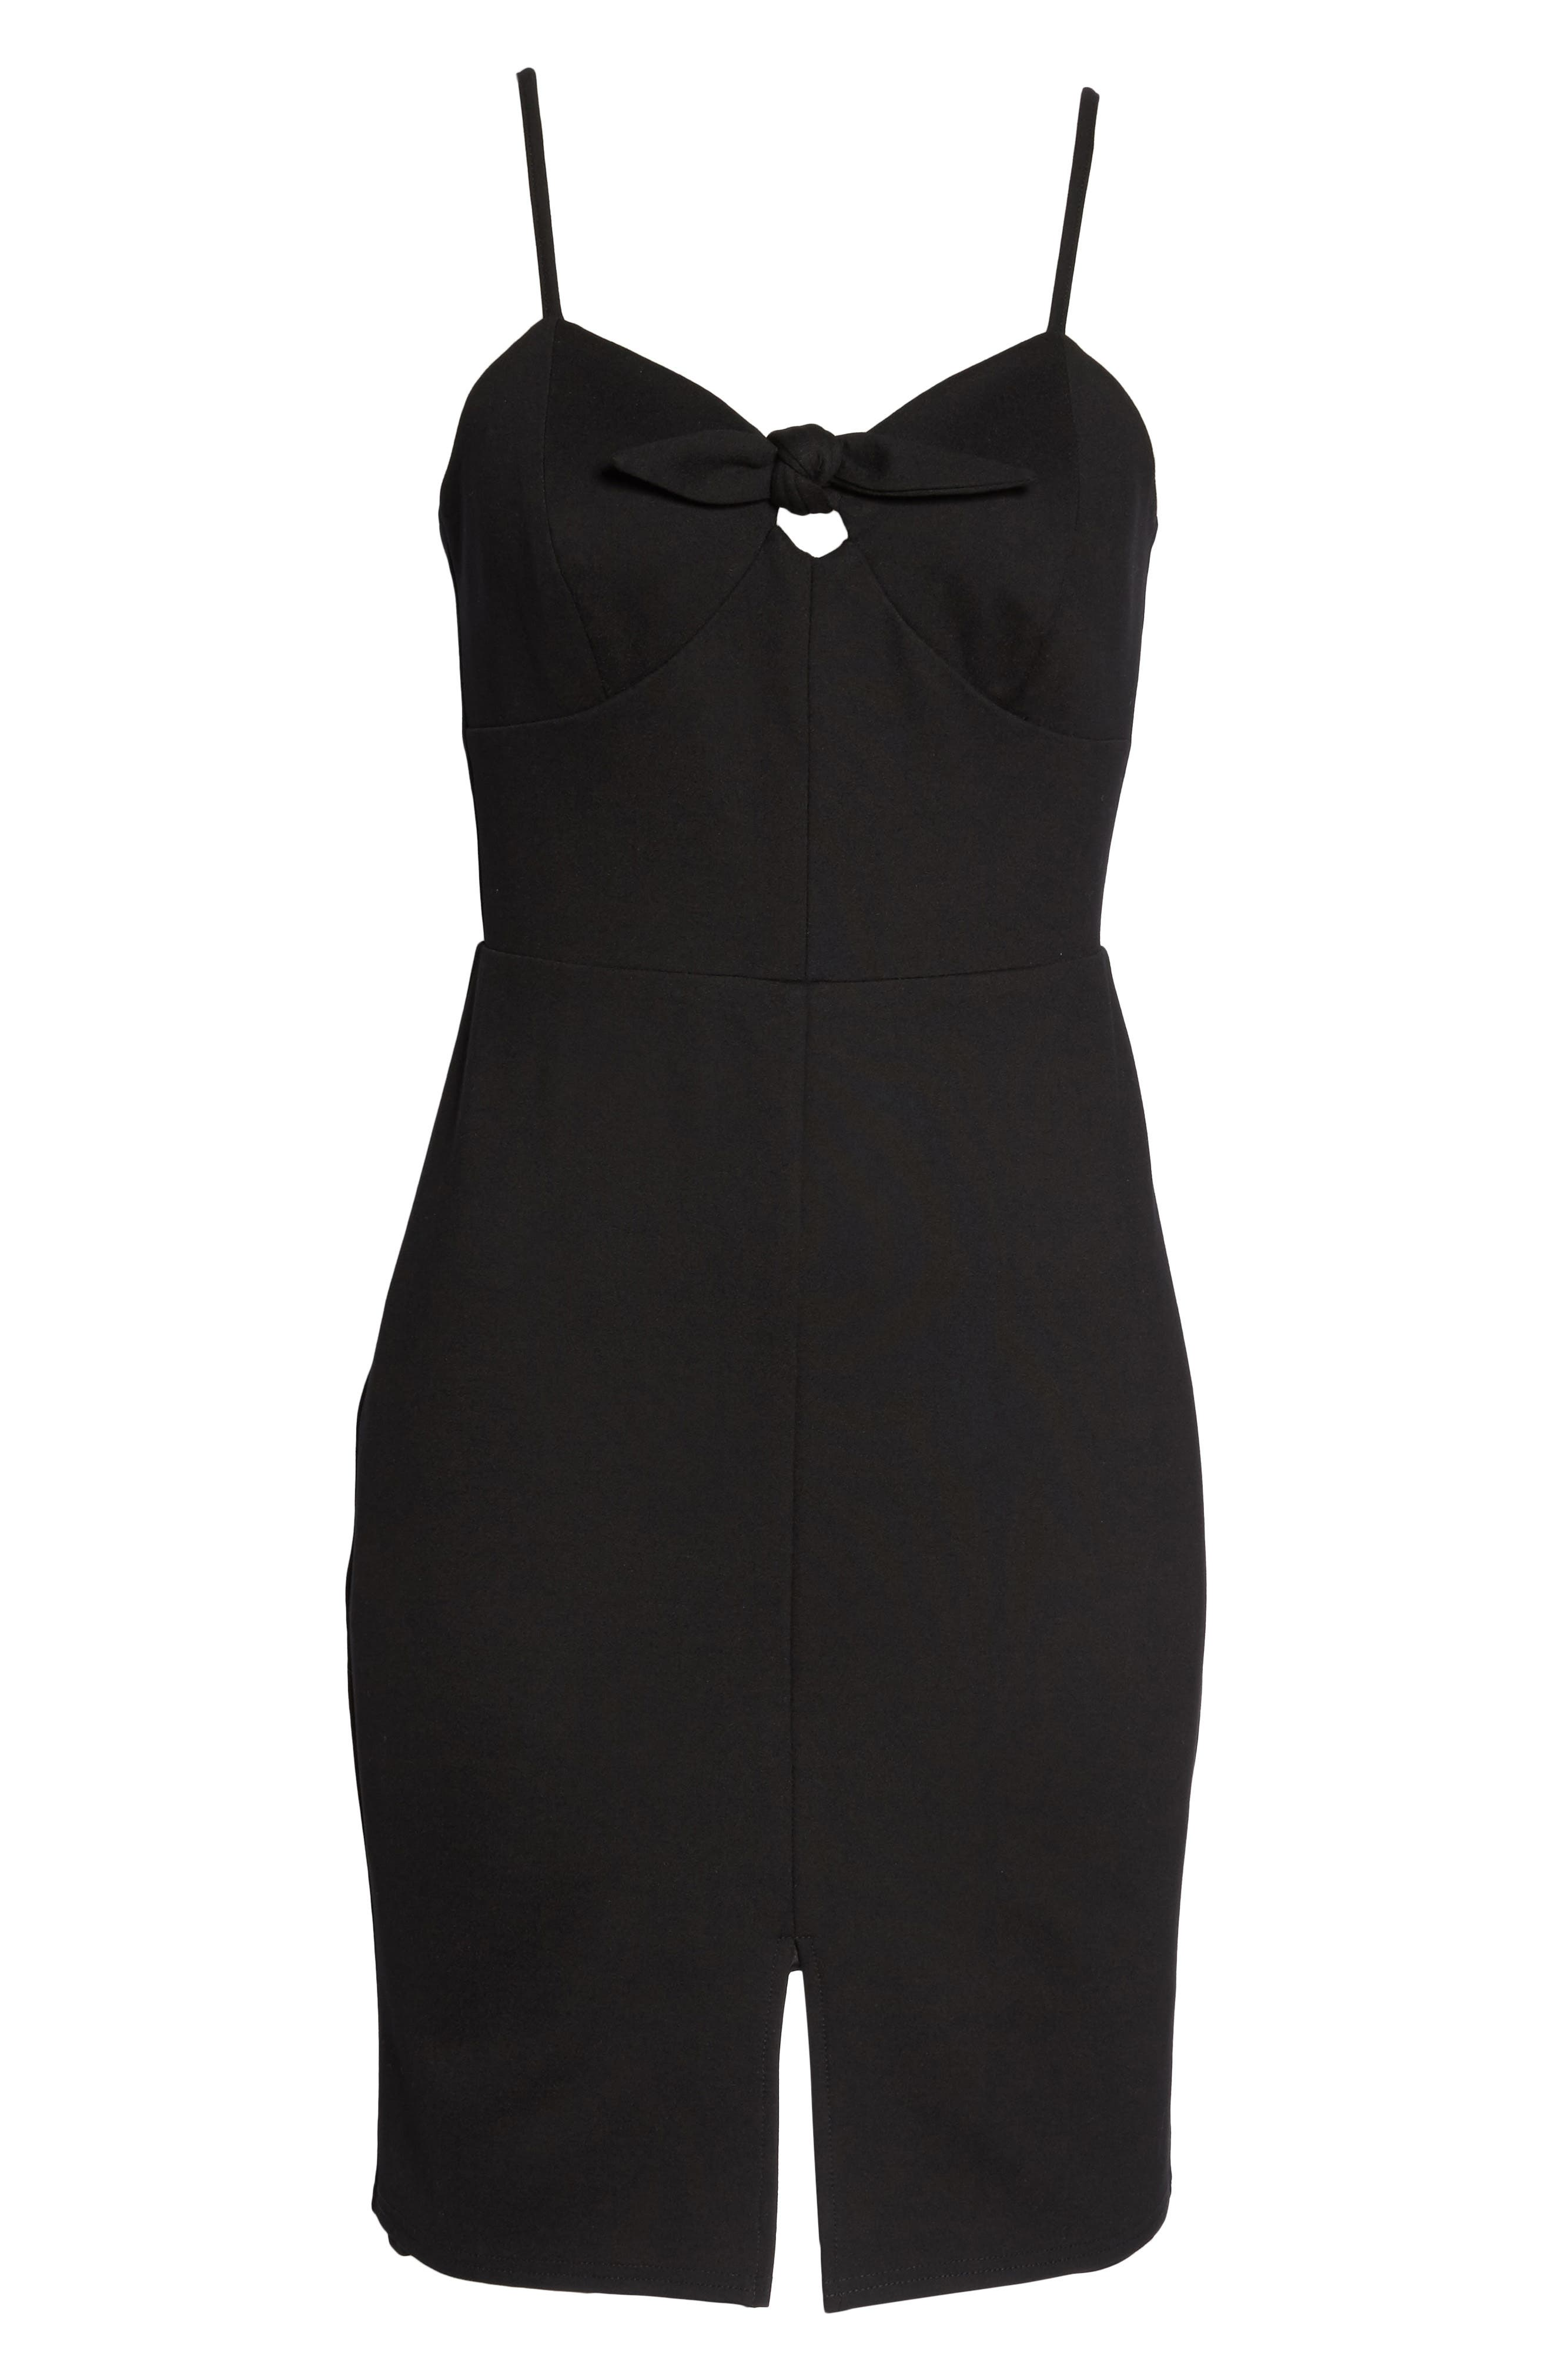 Raynelle Tie Front Sheath Dress,                             Alternate thumbnail 6, color,